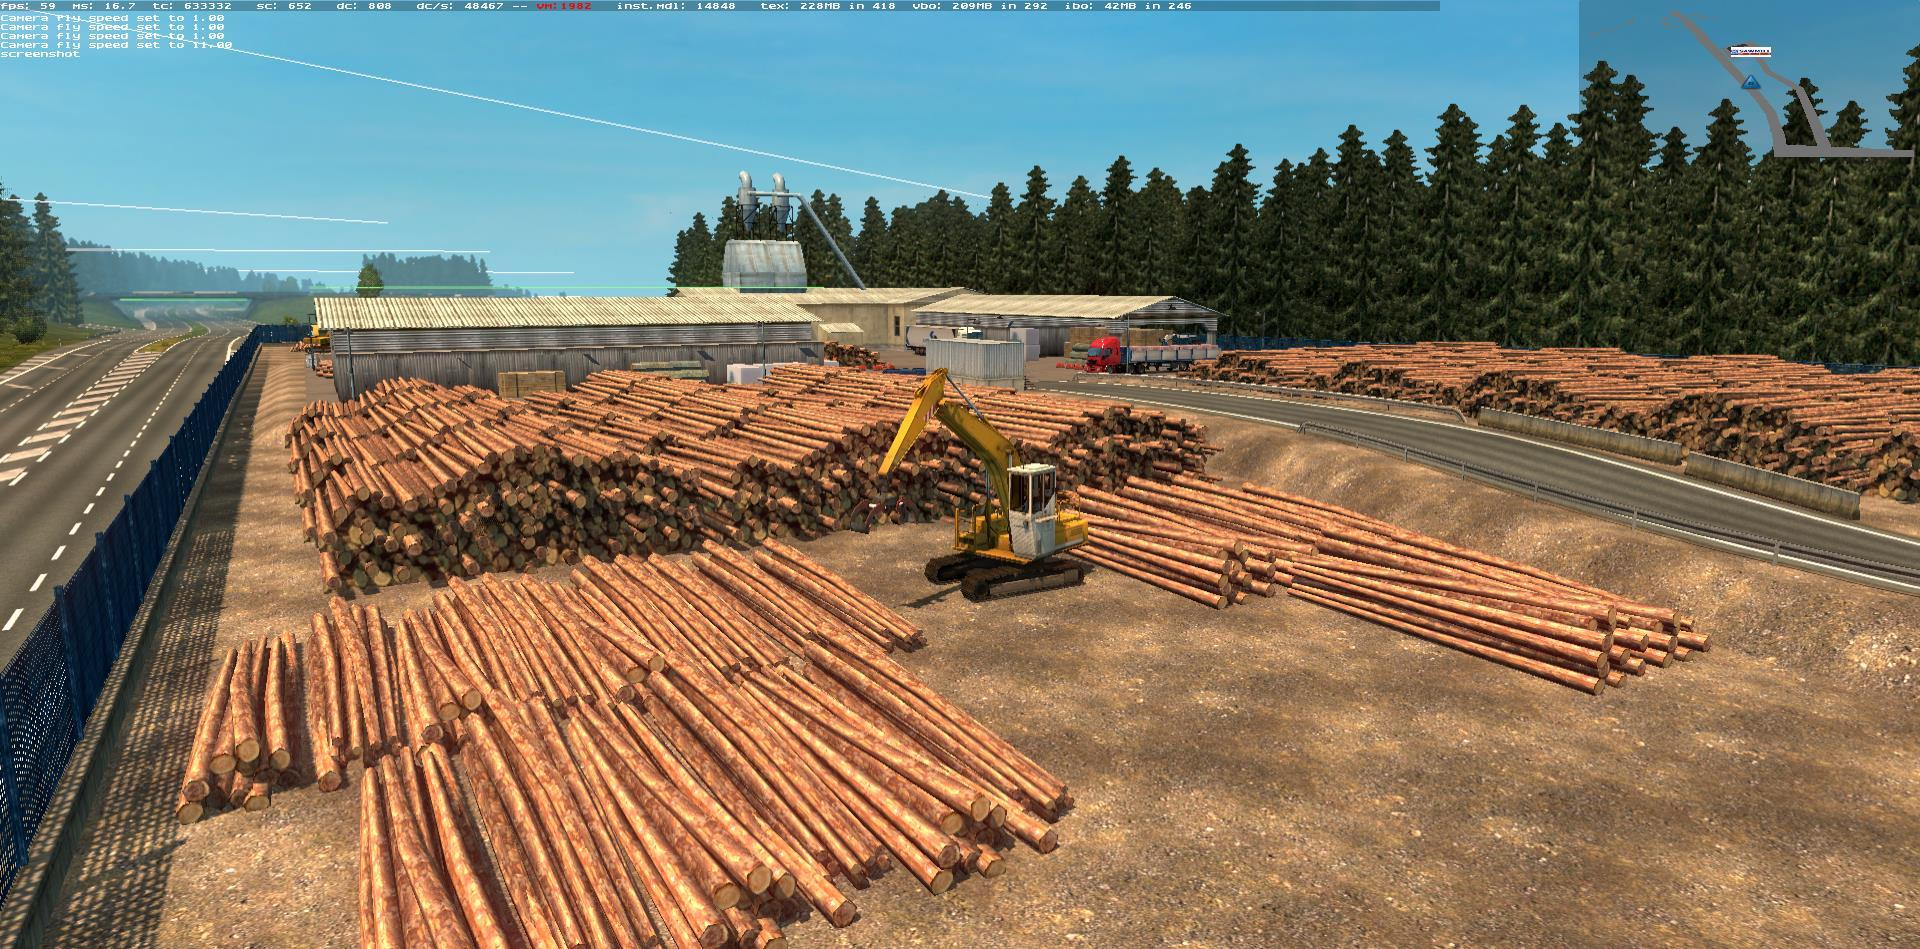 mhapro-map-eu-2-3-2-for-ets2-1-23-x_3